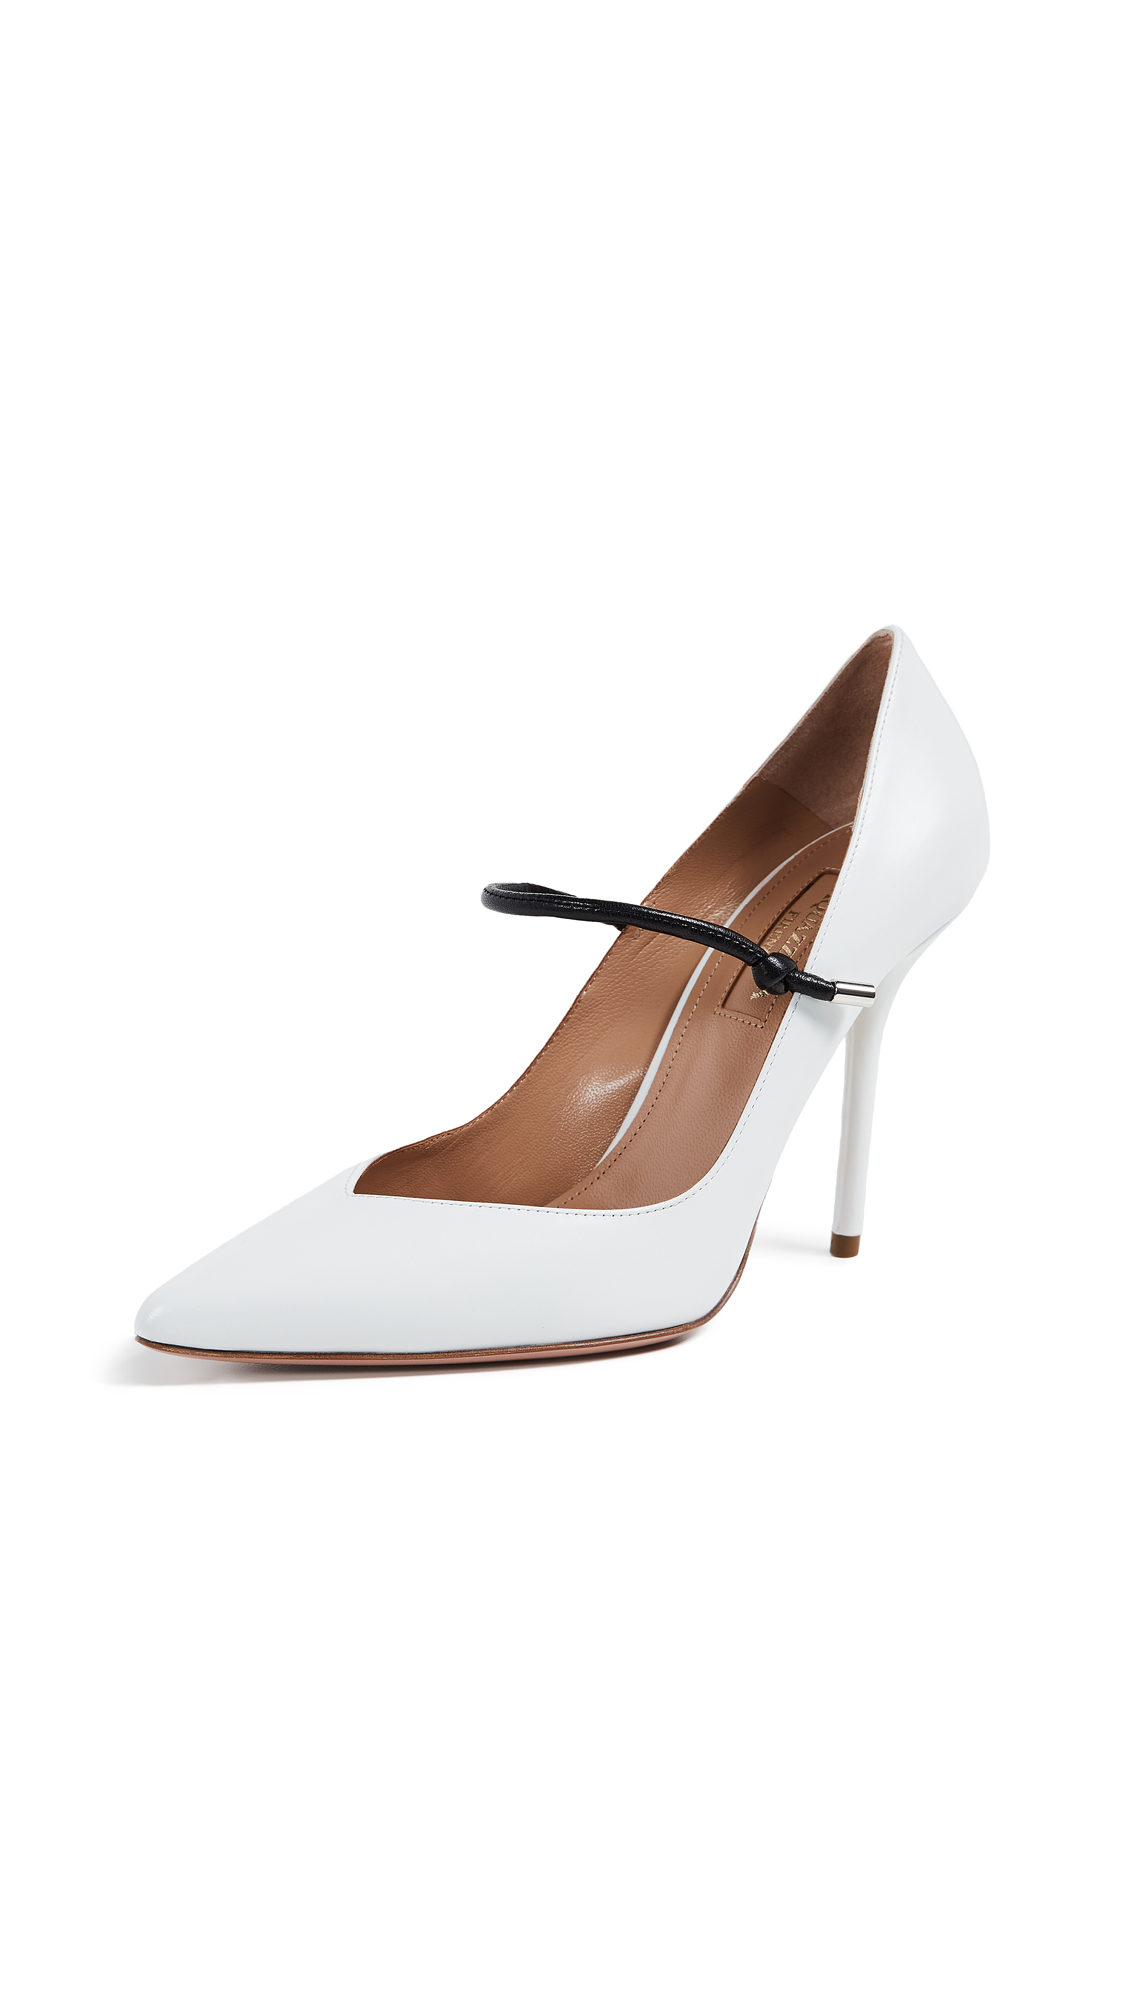 Aquazzura Stylist 105 Pumps - White/Black